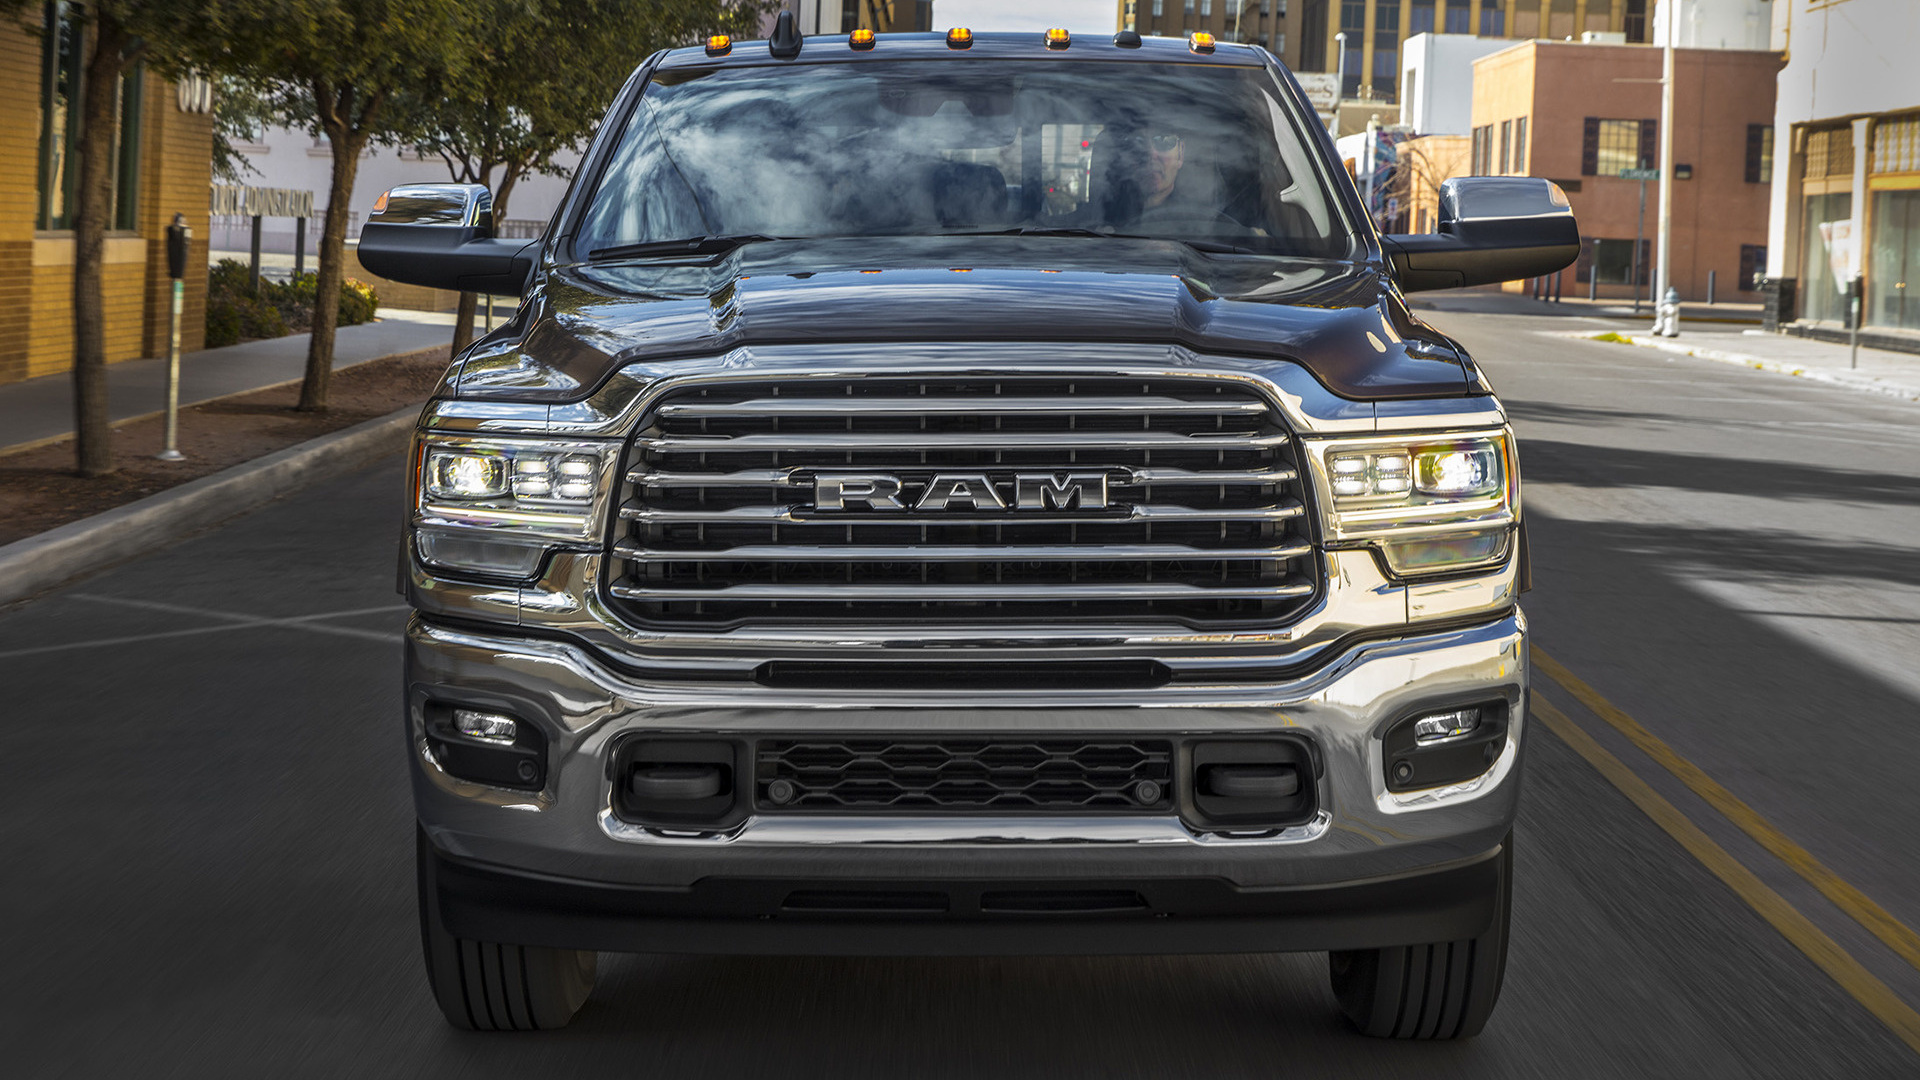 2019 Ram 2500 Longhorn Mega Cab Wallpapers And Hd Images